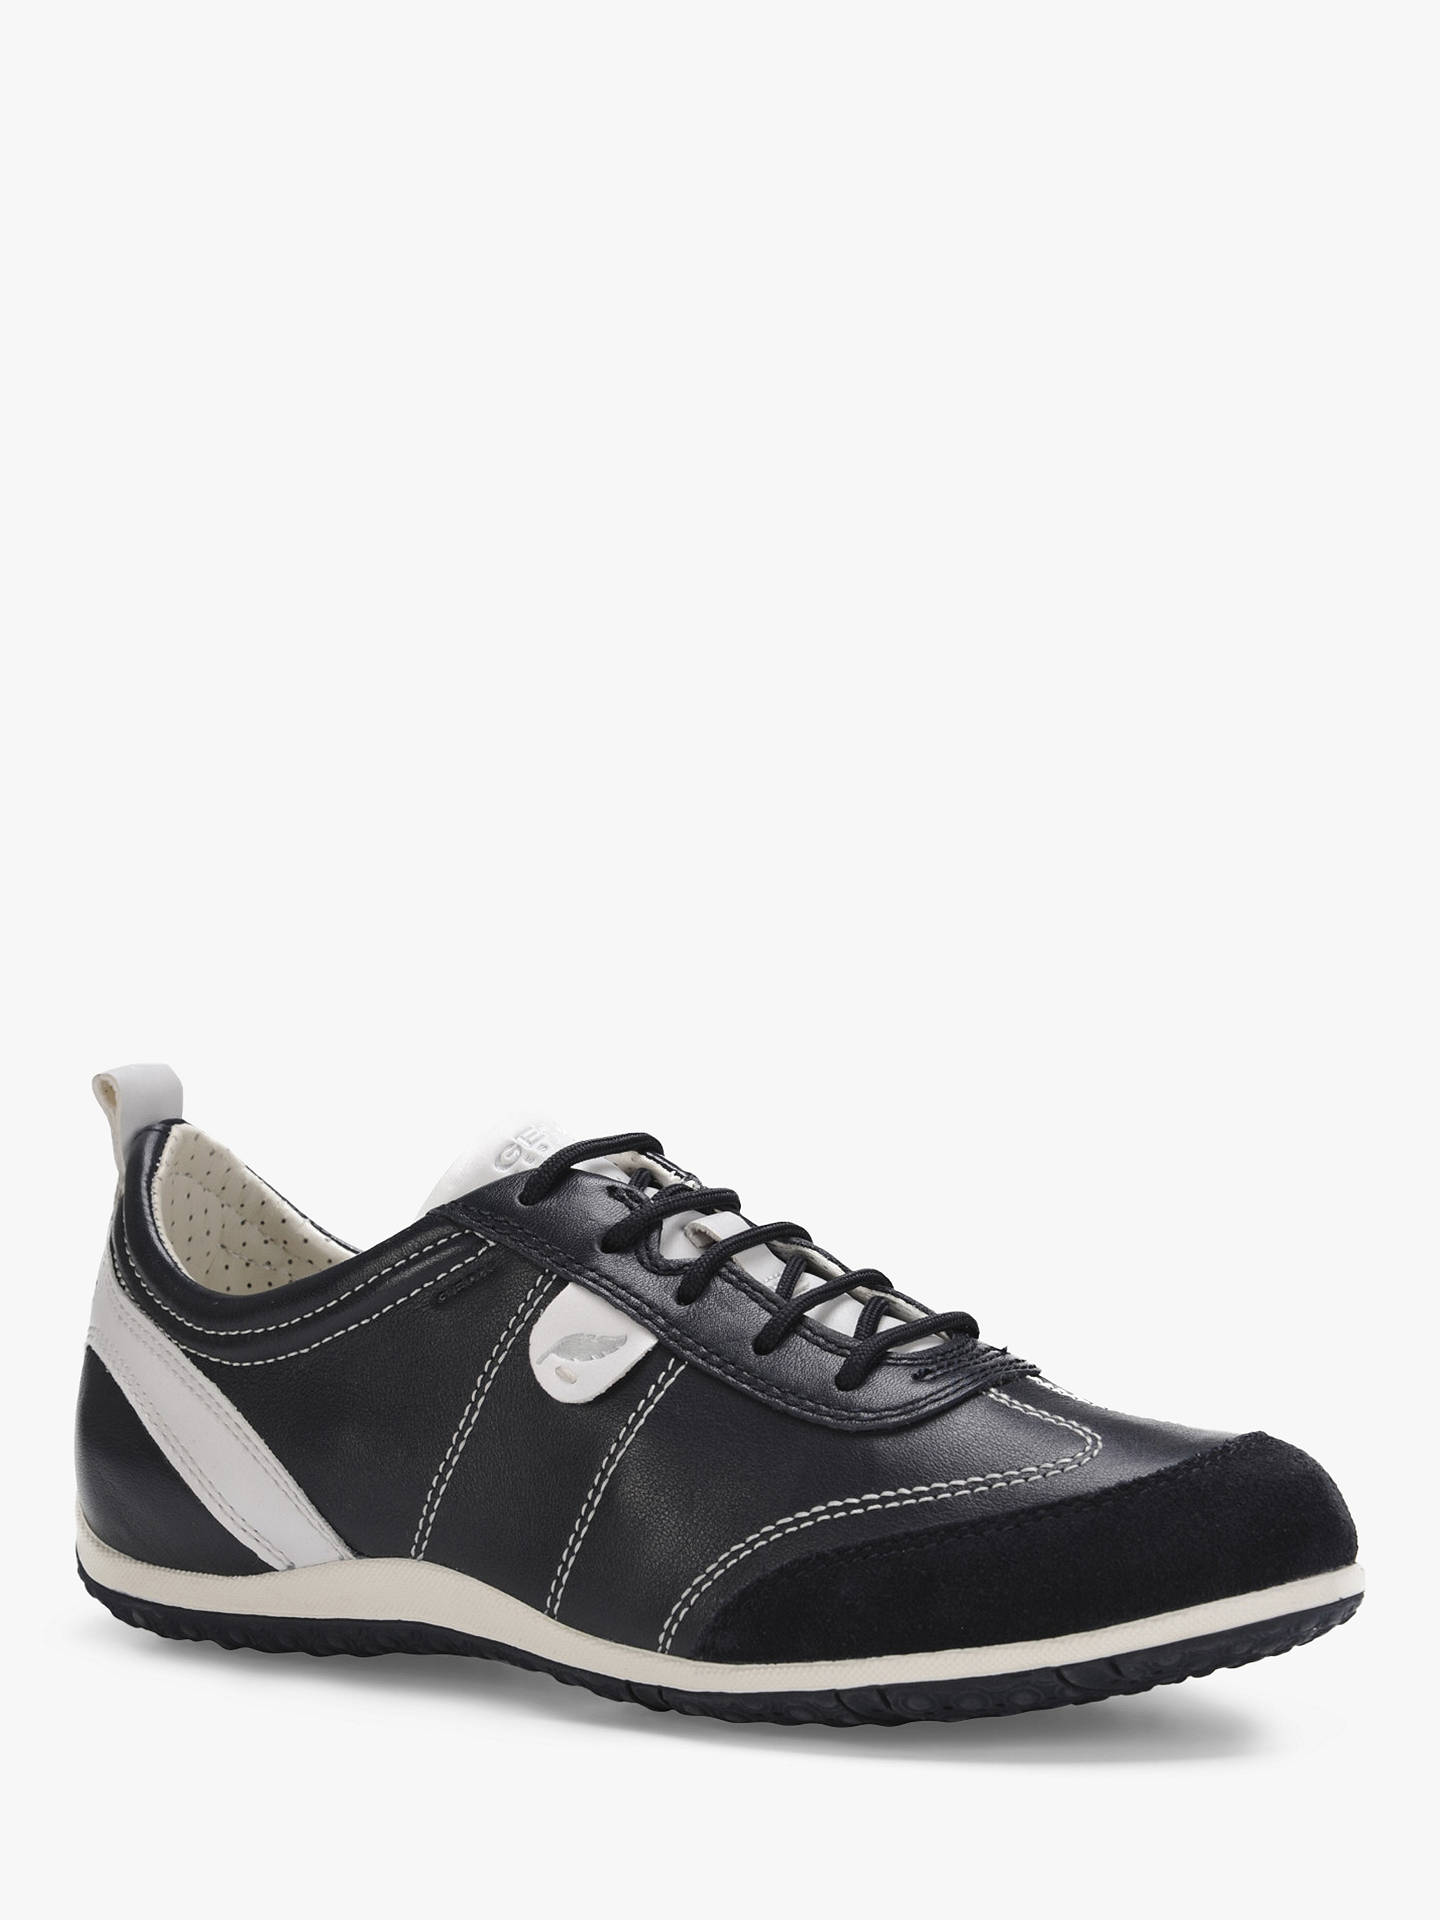 Buy Geox Women's Vega Leather Lace Up Trainers, Navy, 6 Online at johnlewis.com